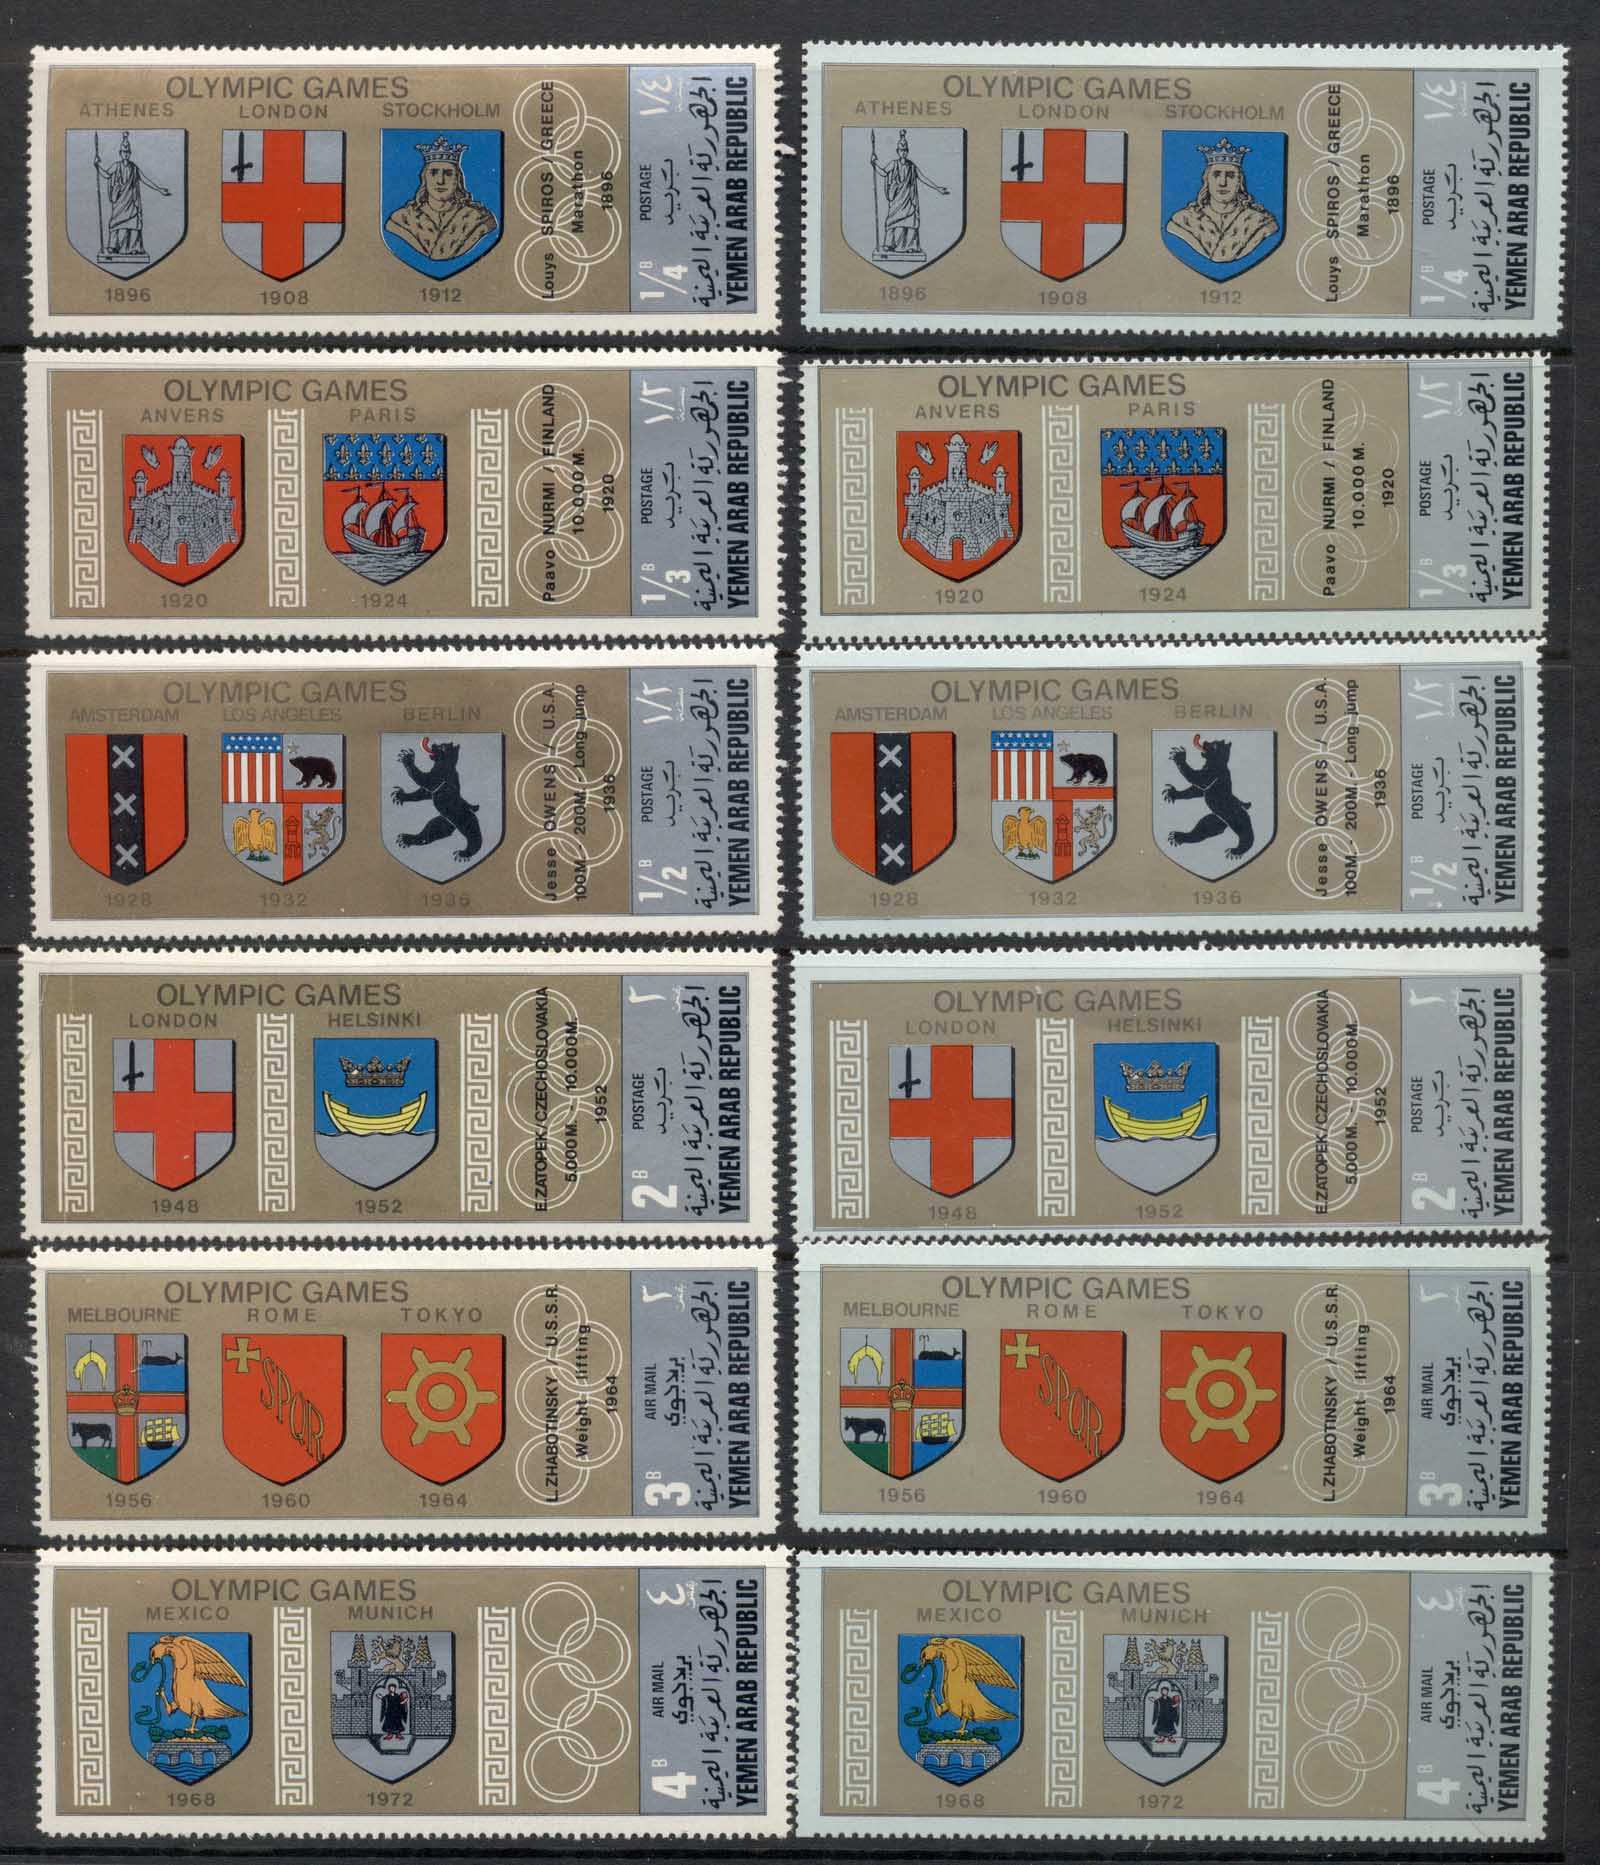 Yemen 1968 Mi#832-837 Summer Olympics Venues, Coats of Arms, white & blue borders MLH